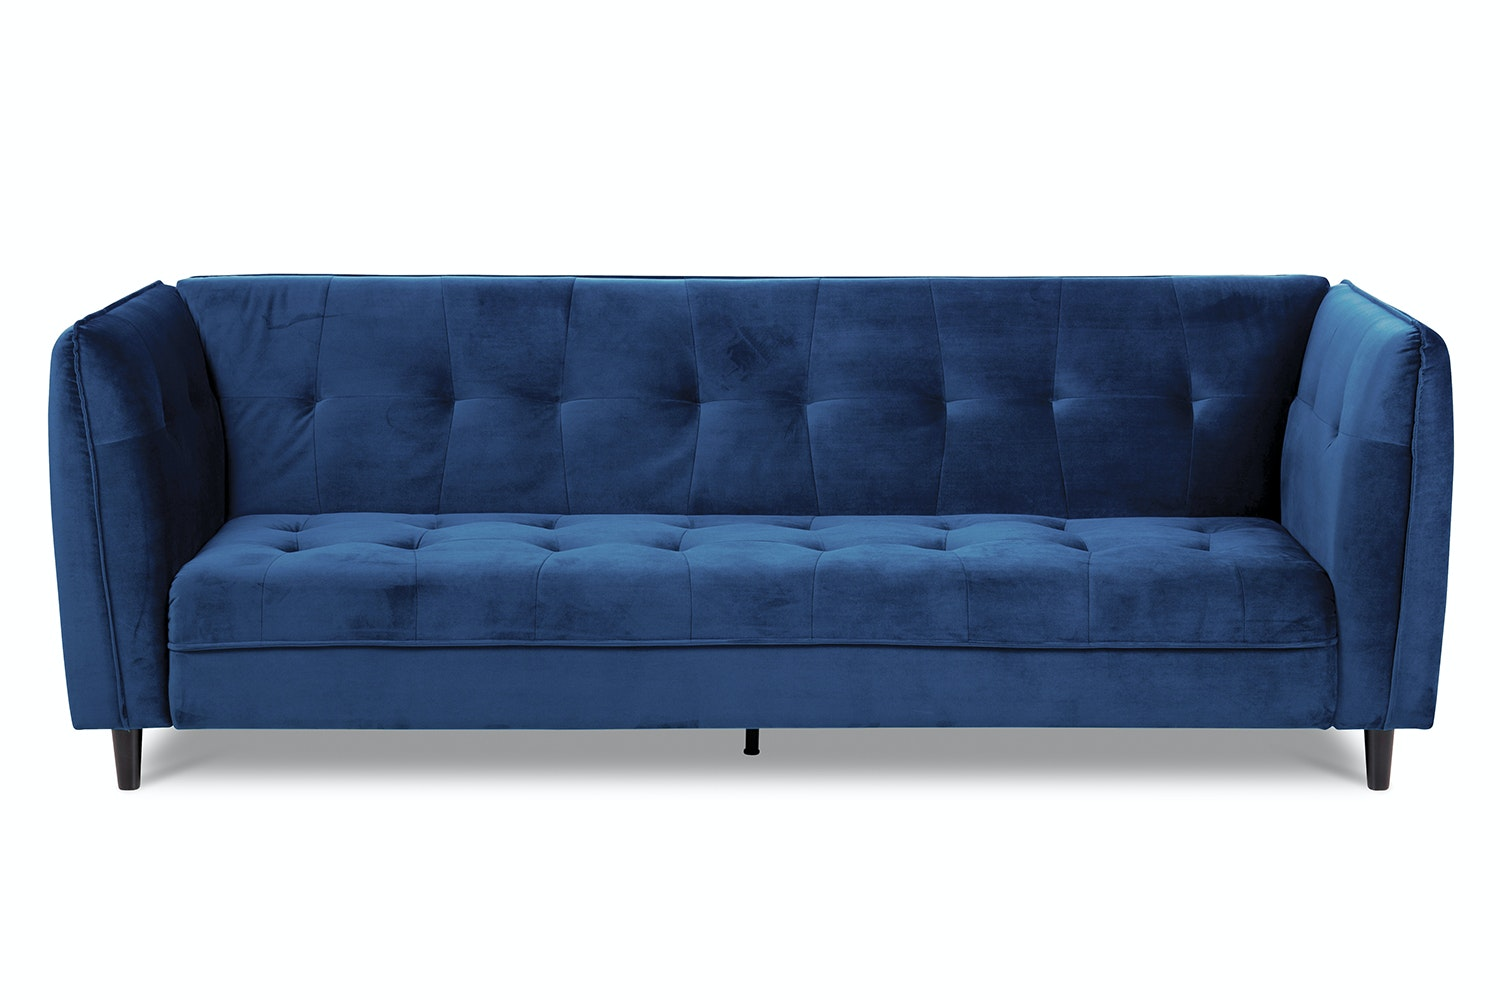 Picture of: Sofa Beds Harvey Norman Ireland